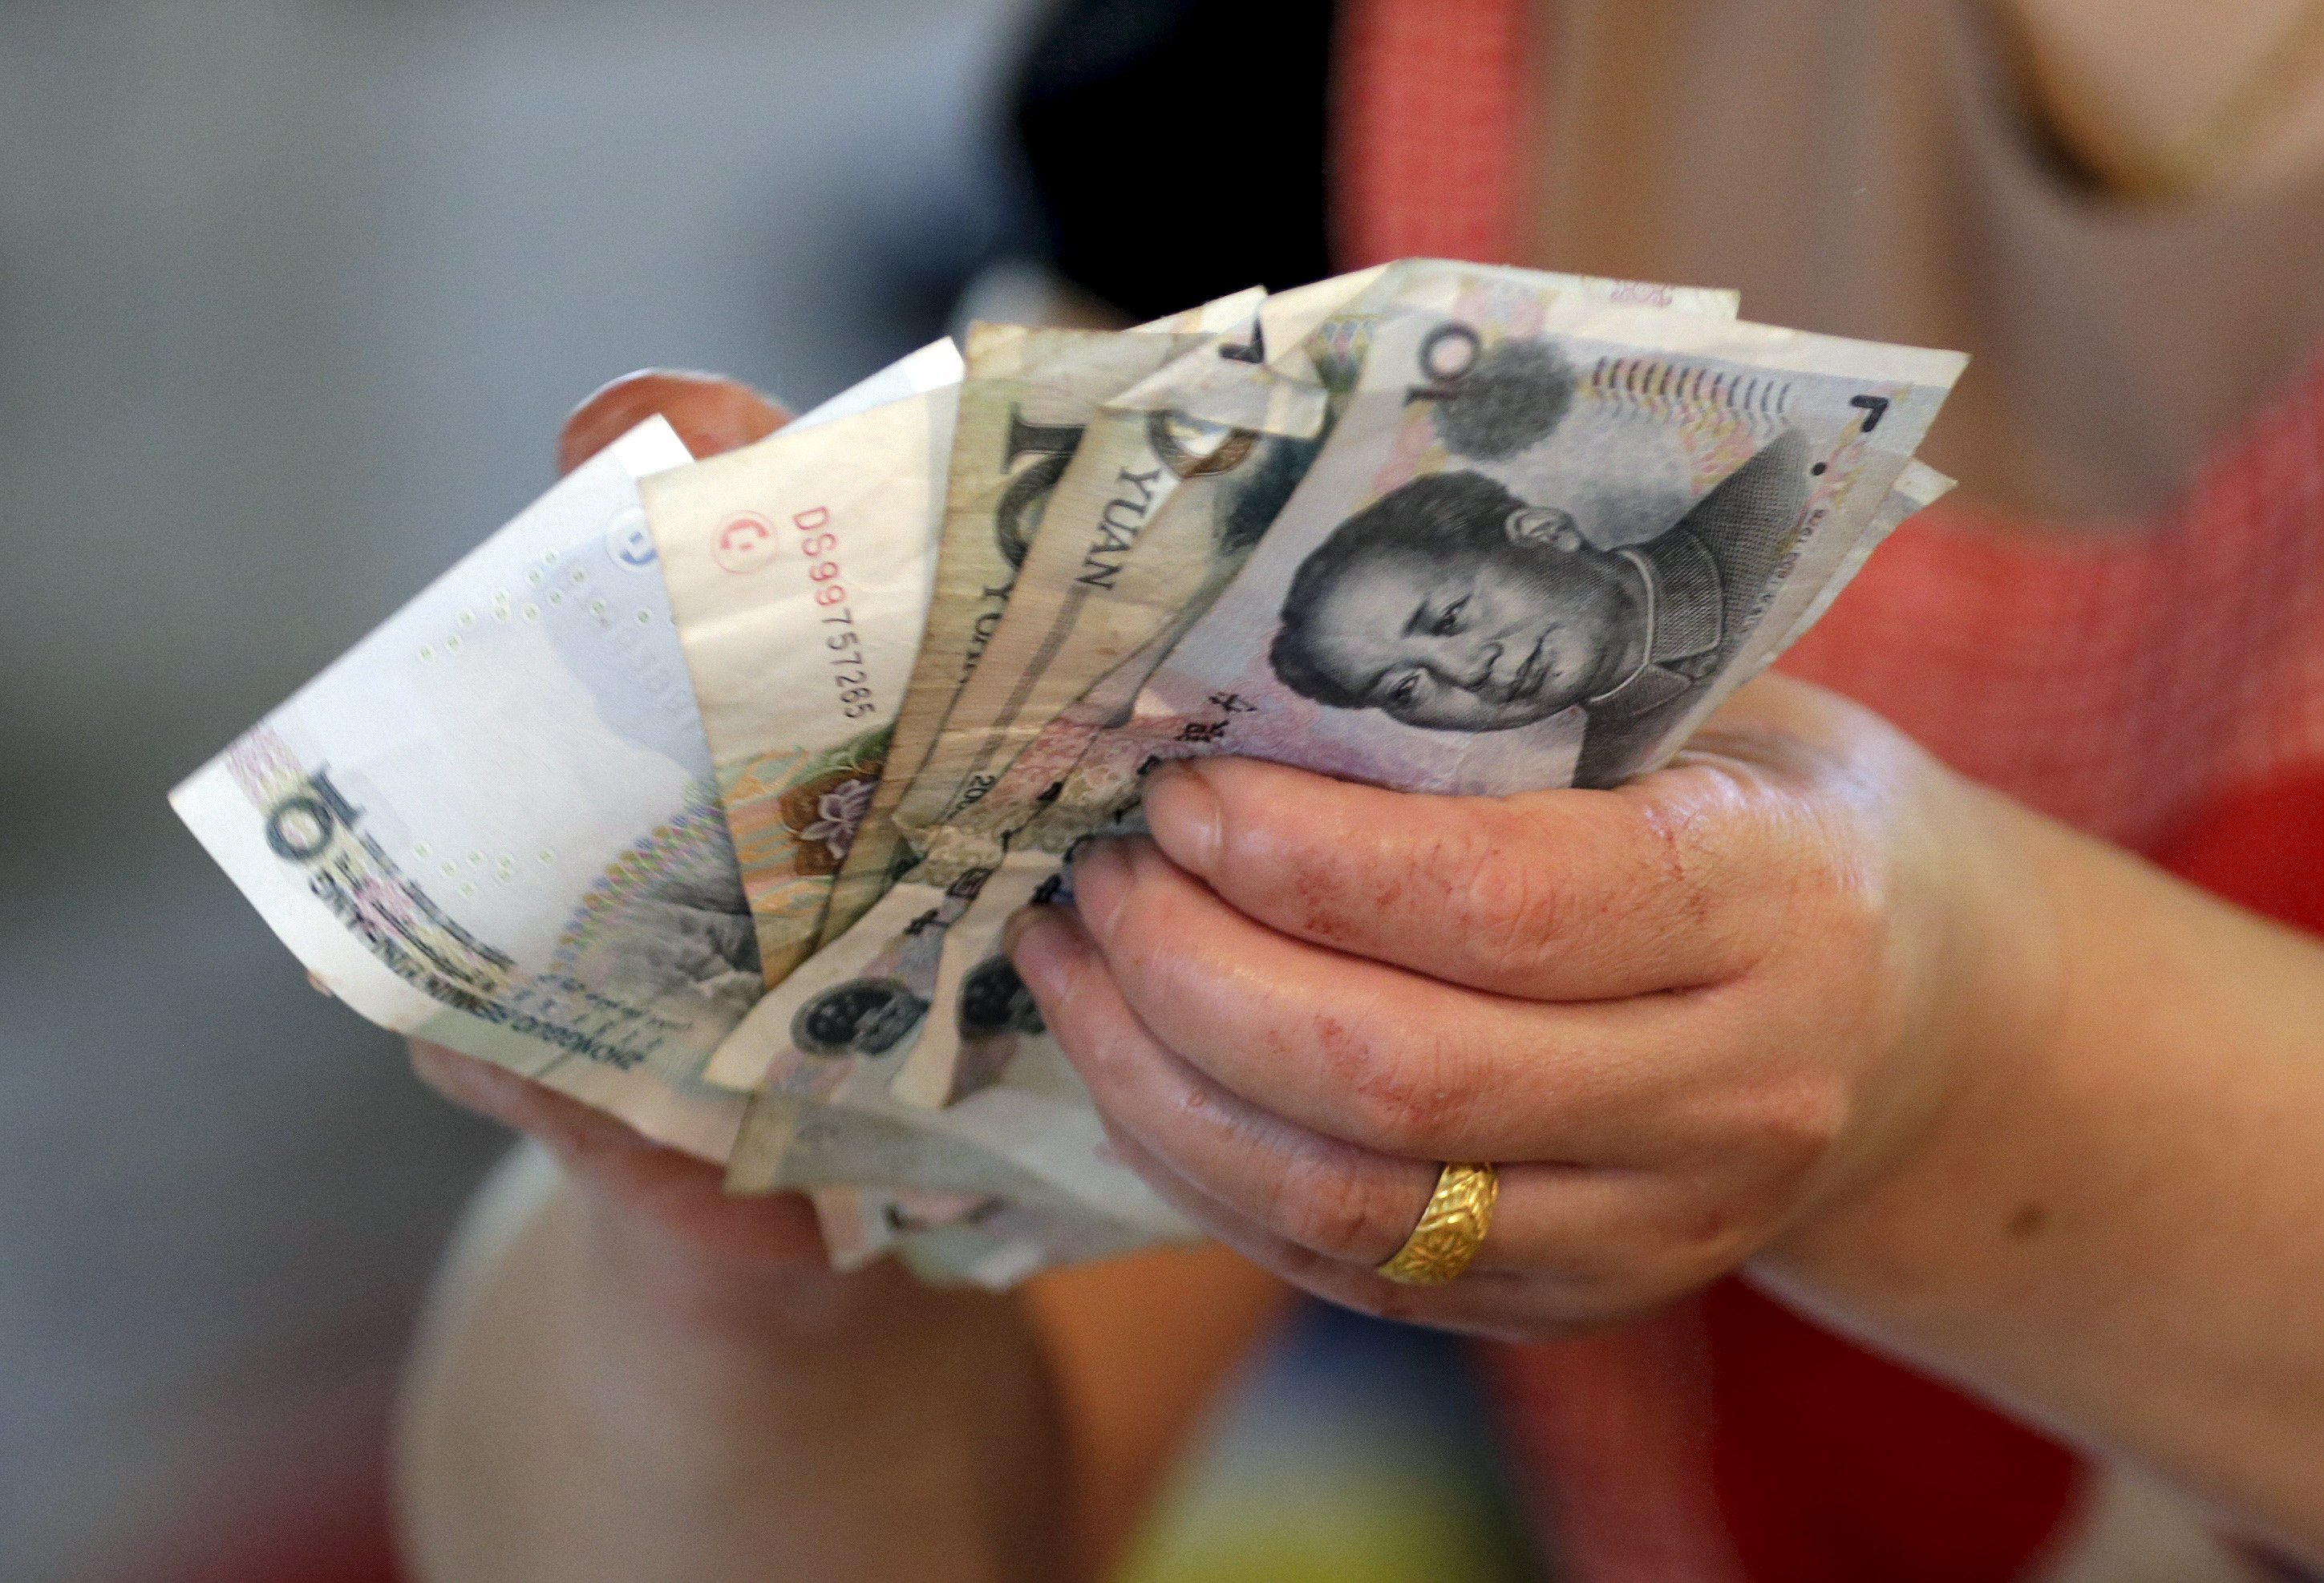 A vendor holds Chinese yuan notes at a market in Beijing in this August 12, 2015 file photo. China's yuan opened weaker against the dollar on August 17, 2015 but was stronger than the official midpoint fixed by the central bank.  Photo: Reuters